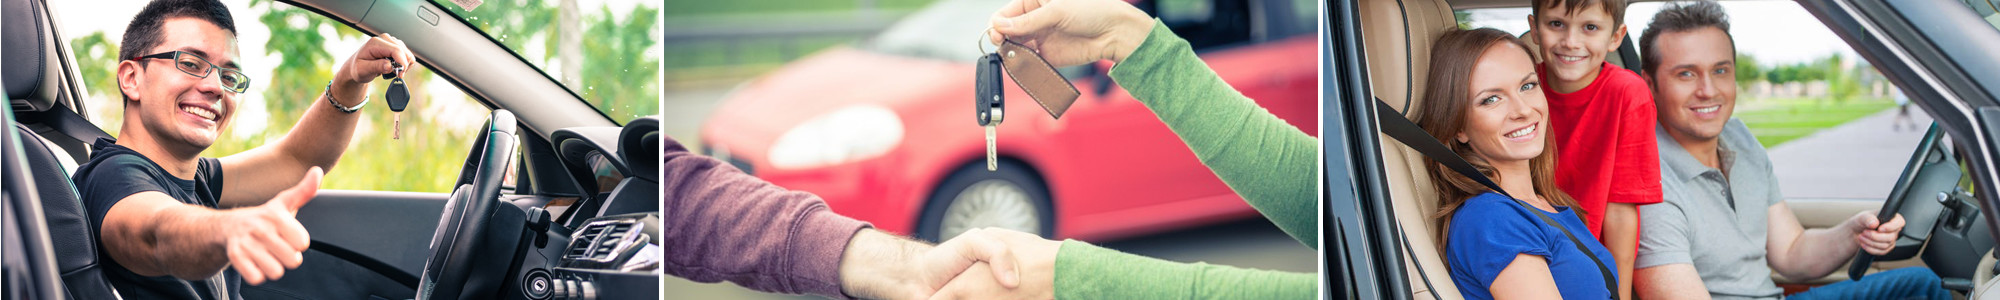 Sell Your Vehicle in Catskill